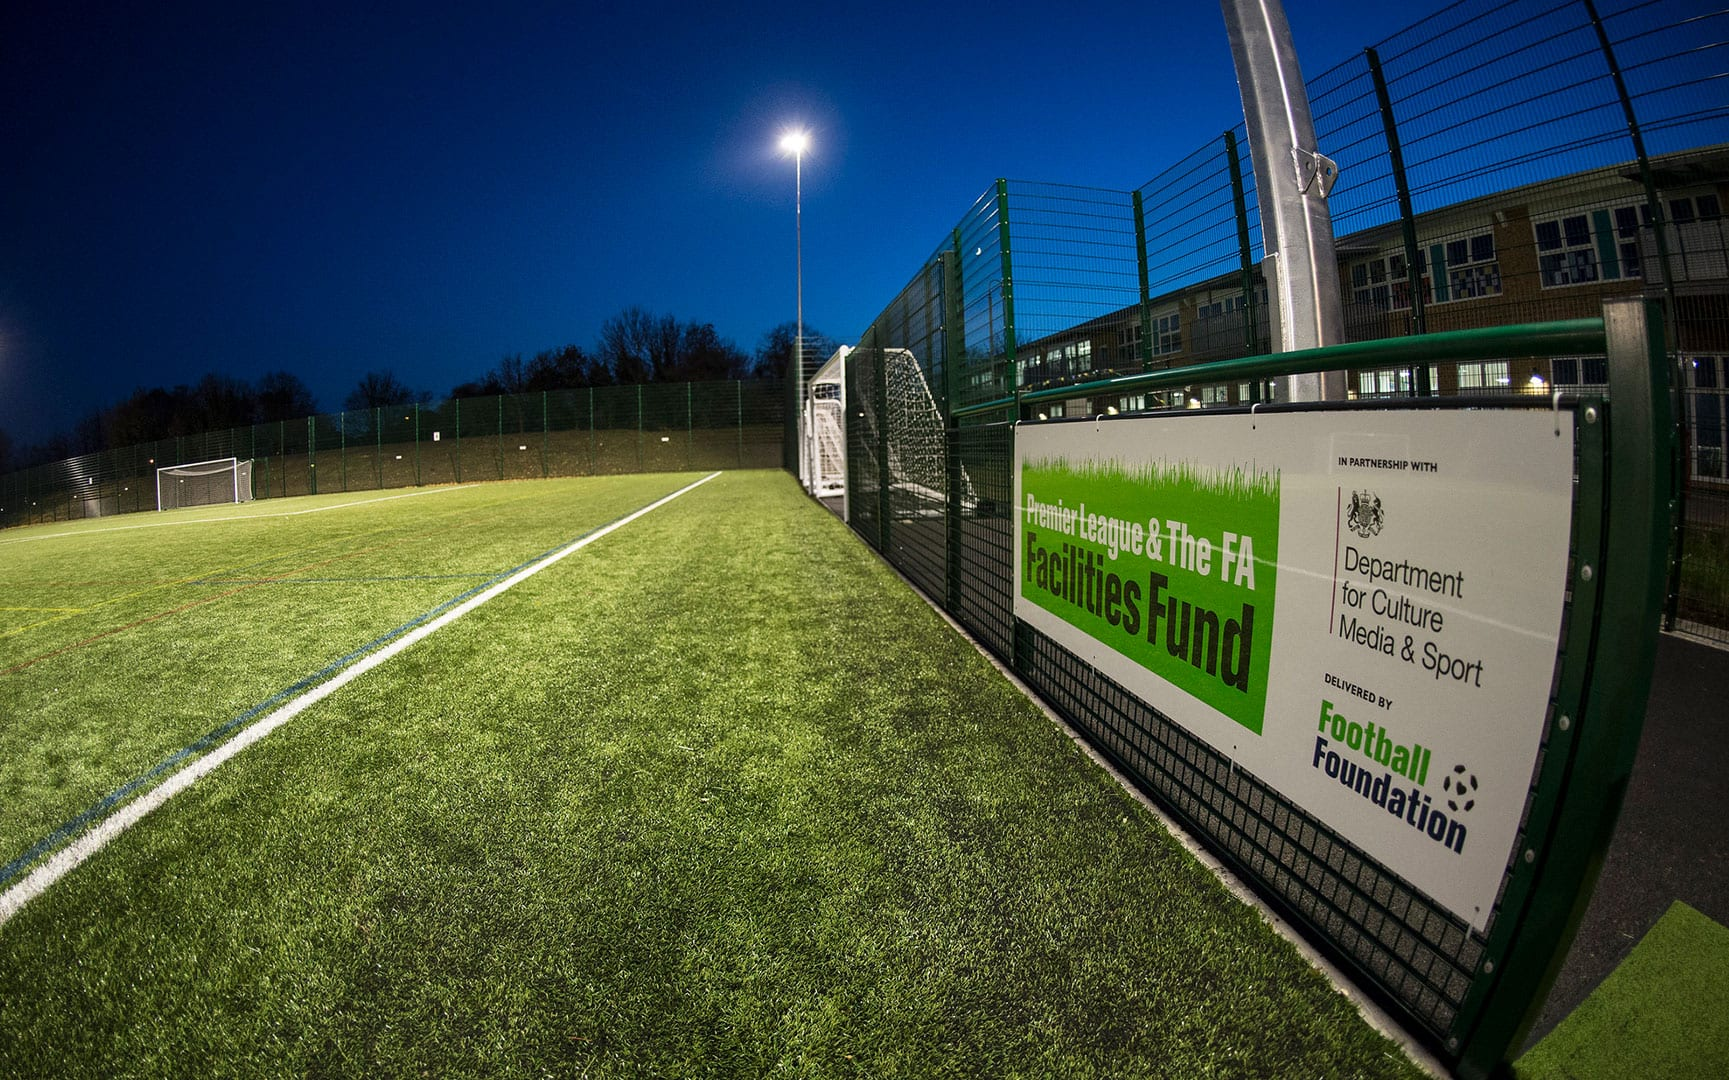 3g Sports Pitch, Enfield Centre